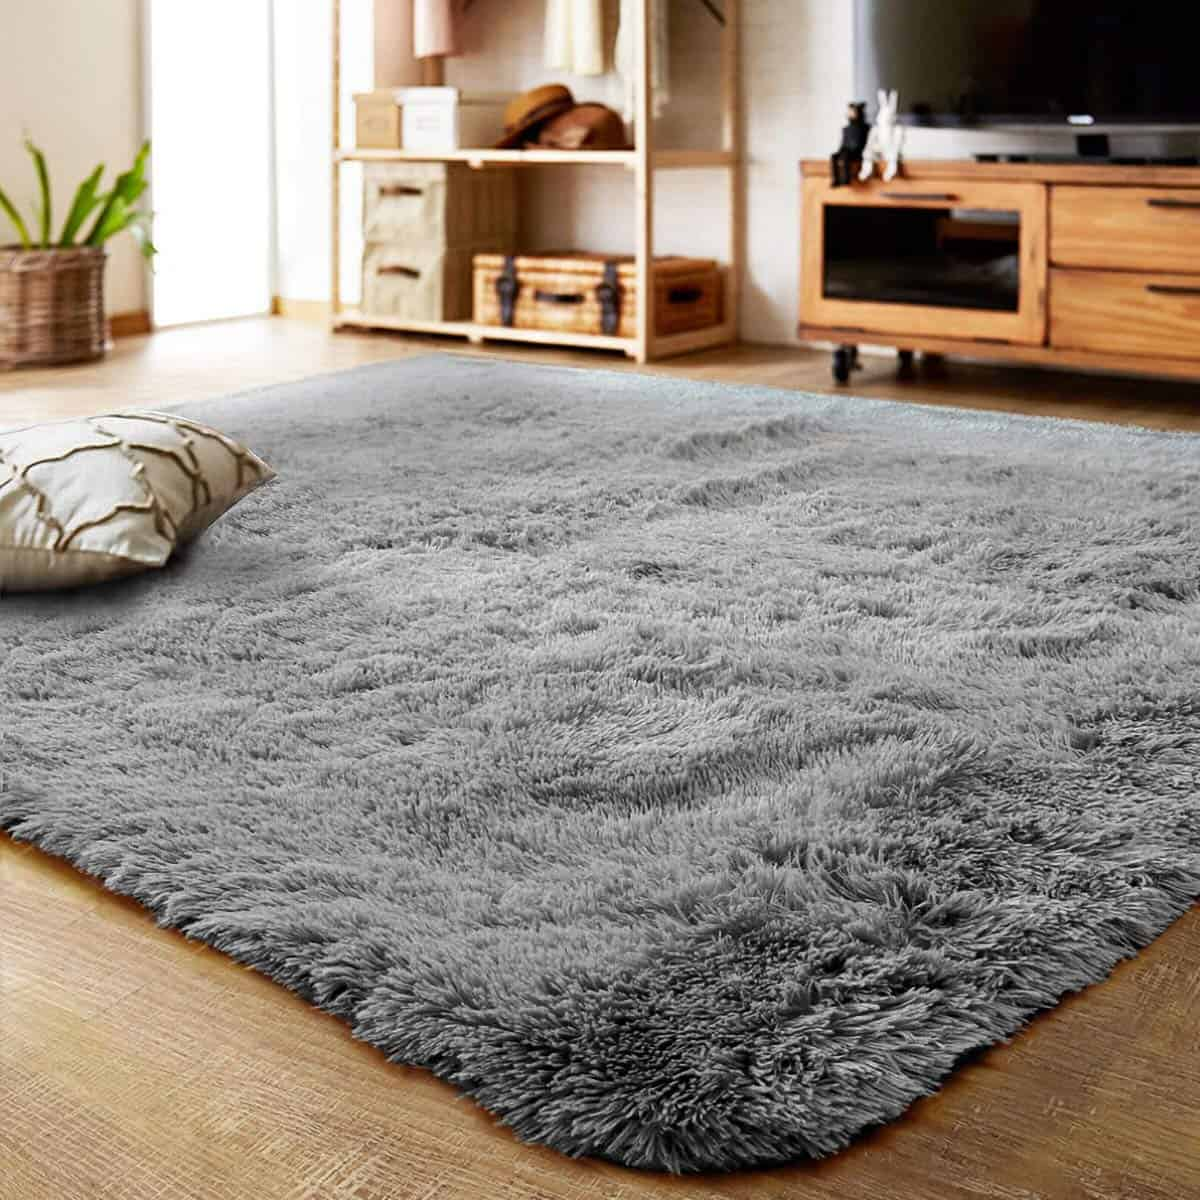 A soft, gray rug is spread across a hardwood floor.